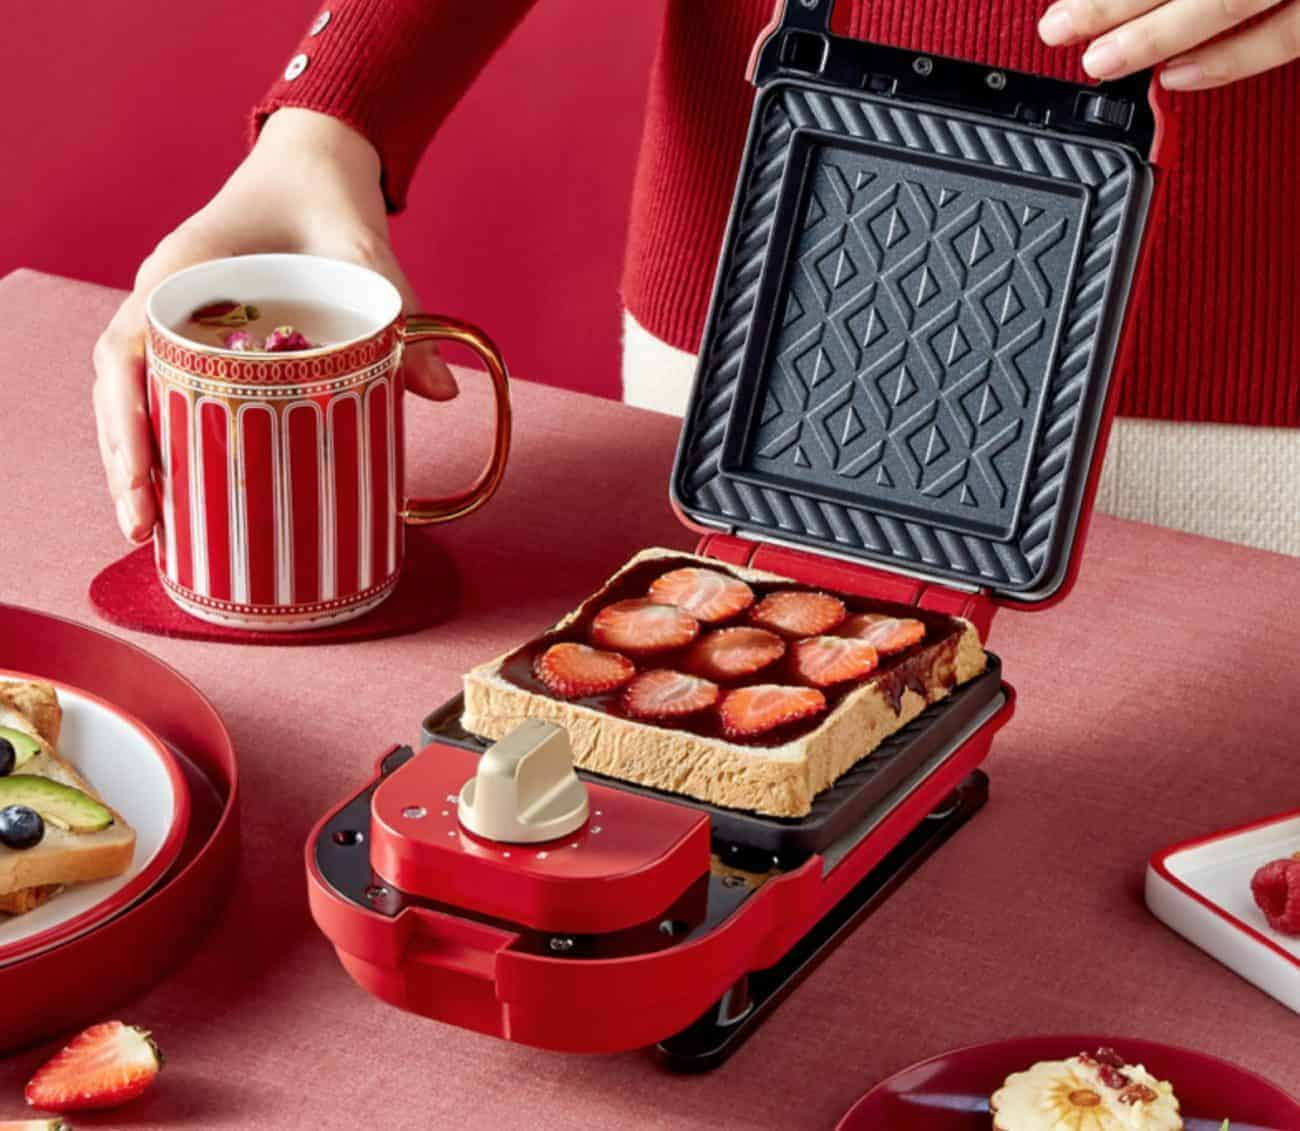 How to Choose the Best Waffle Maker